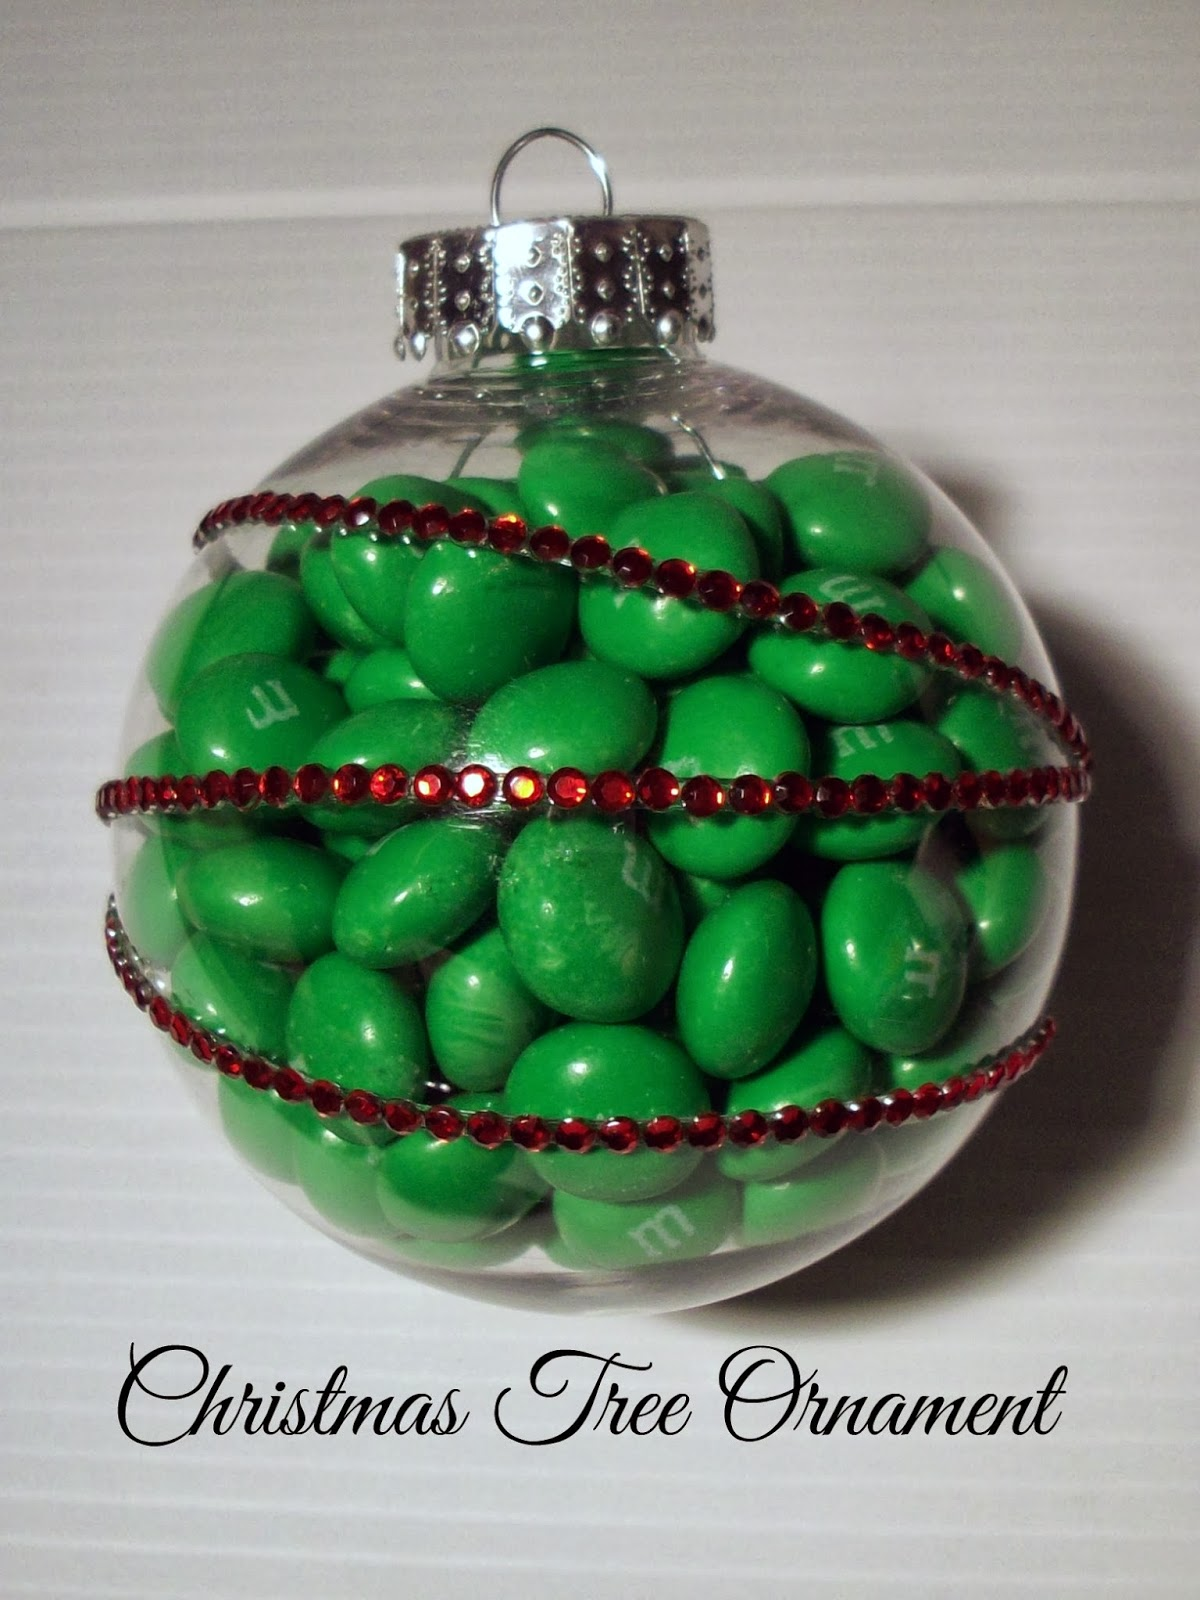 Christmas Ornament Craft with M&M's - Food Crafts and Family